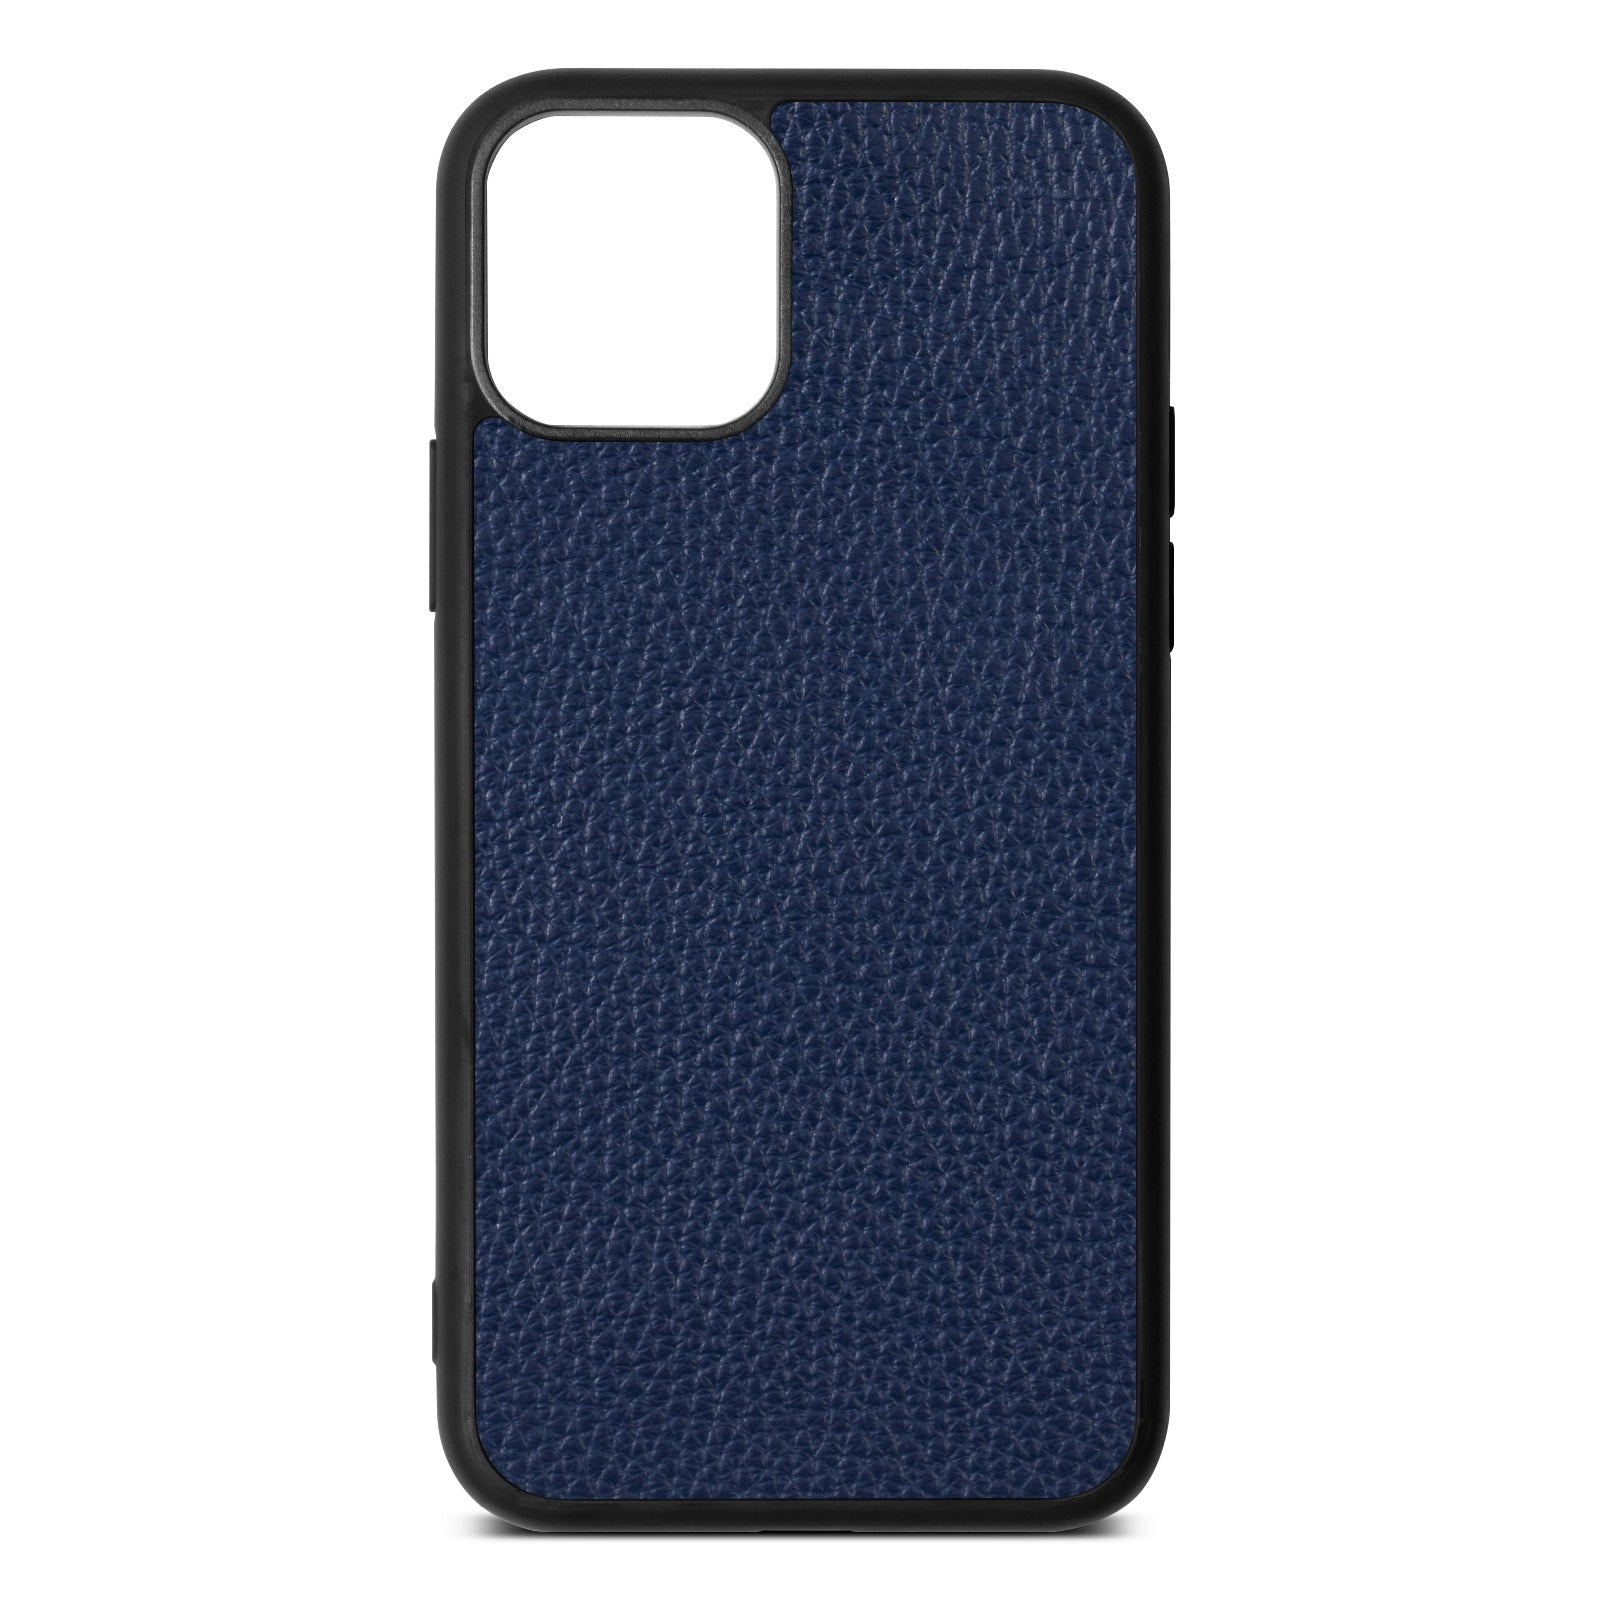 Blank iPhone 11 Navy Blue Pebble Grain Leather Case